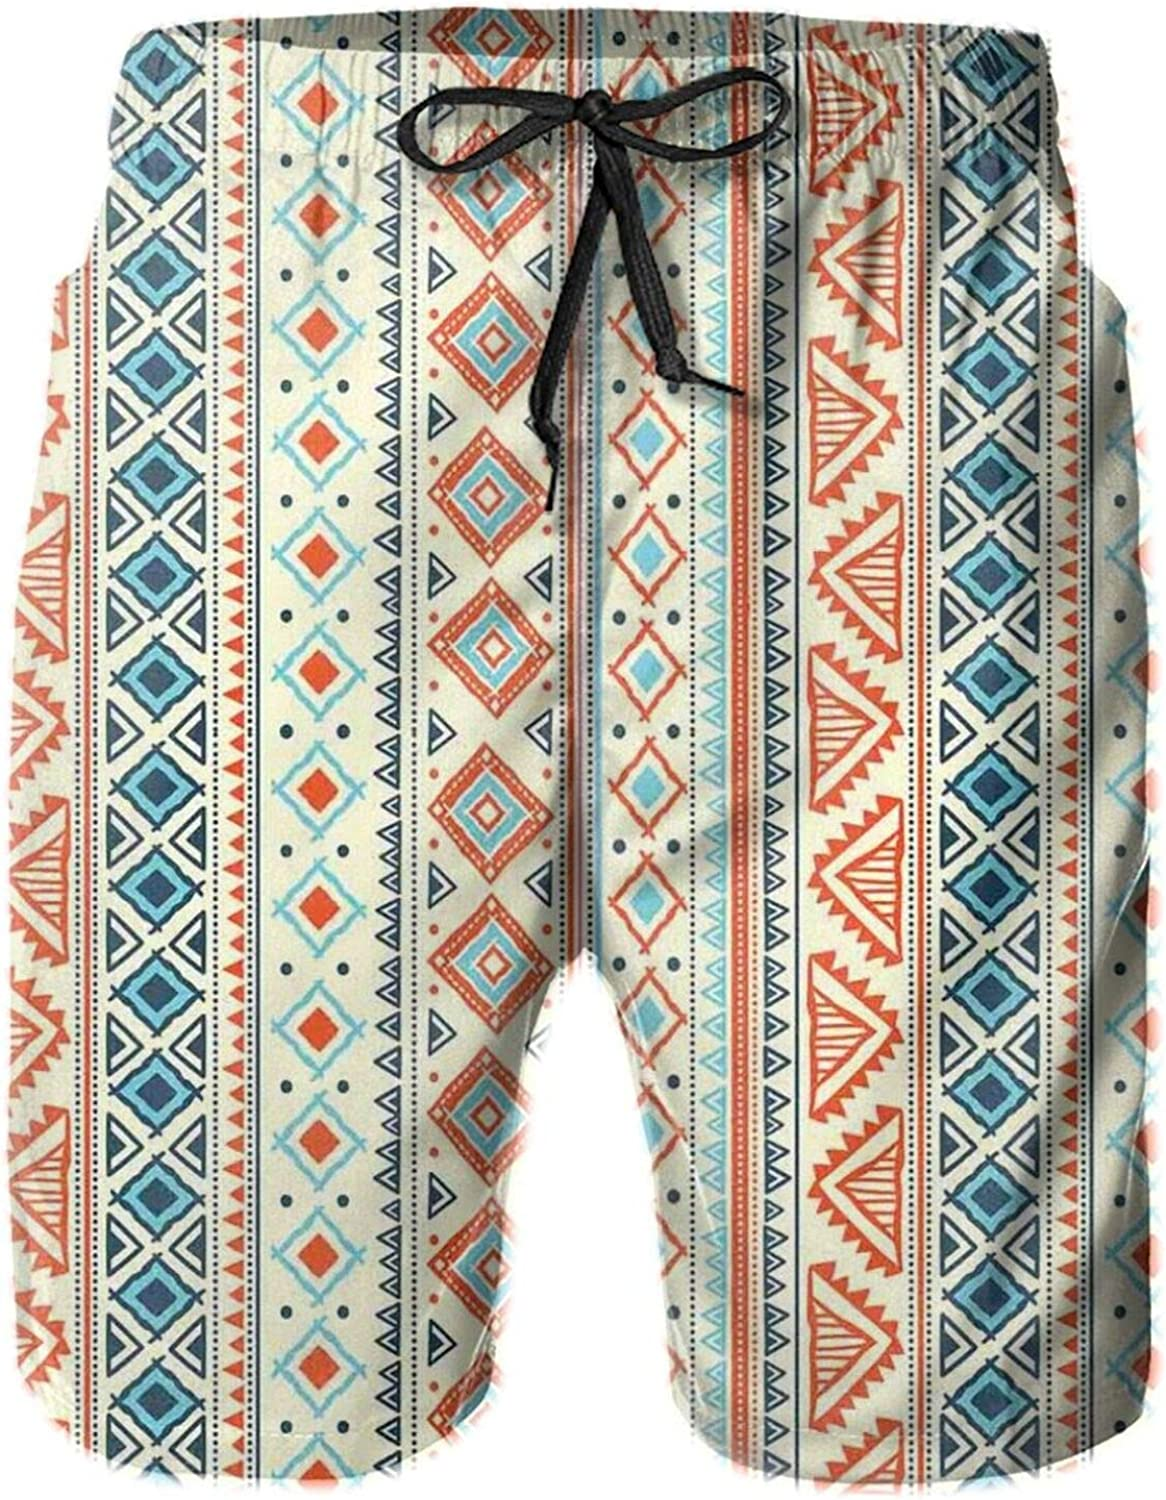 Mexican Style Aztec Patterned Retro Hand Drawn Design Abstract Mens Swim Shorts Casual Workout Short Pants Drawstring Beach Shorts,XXL